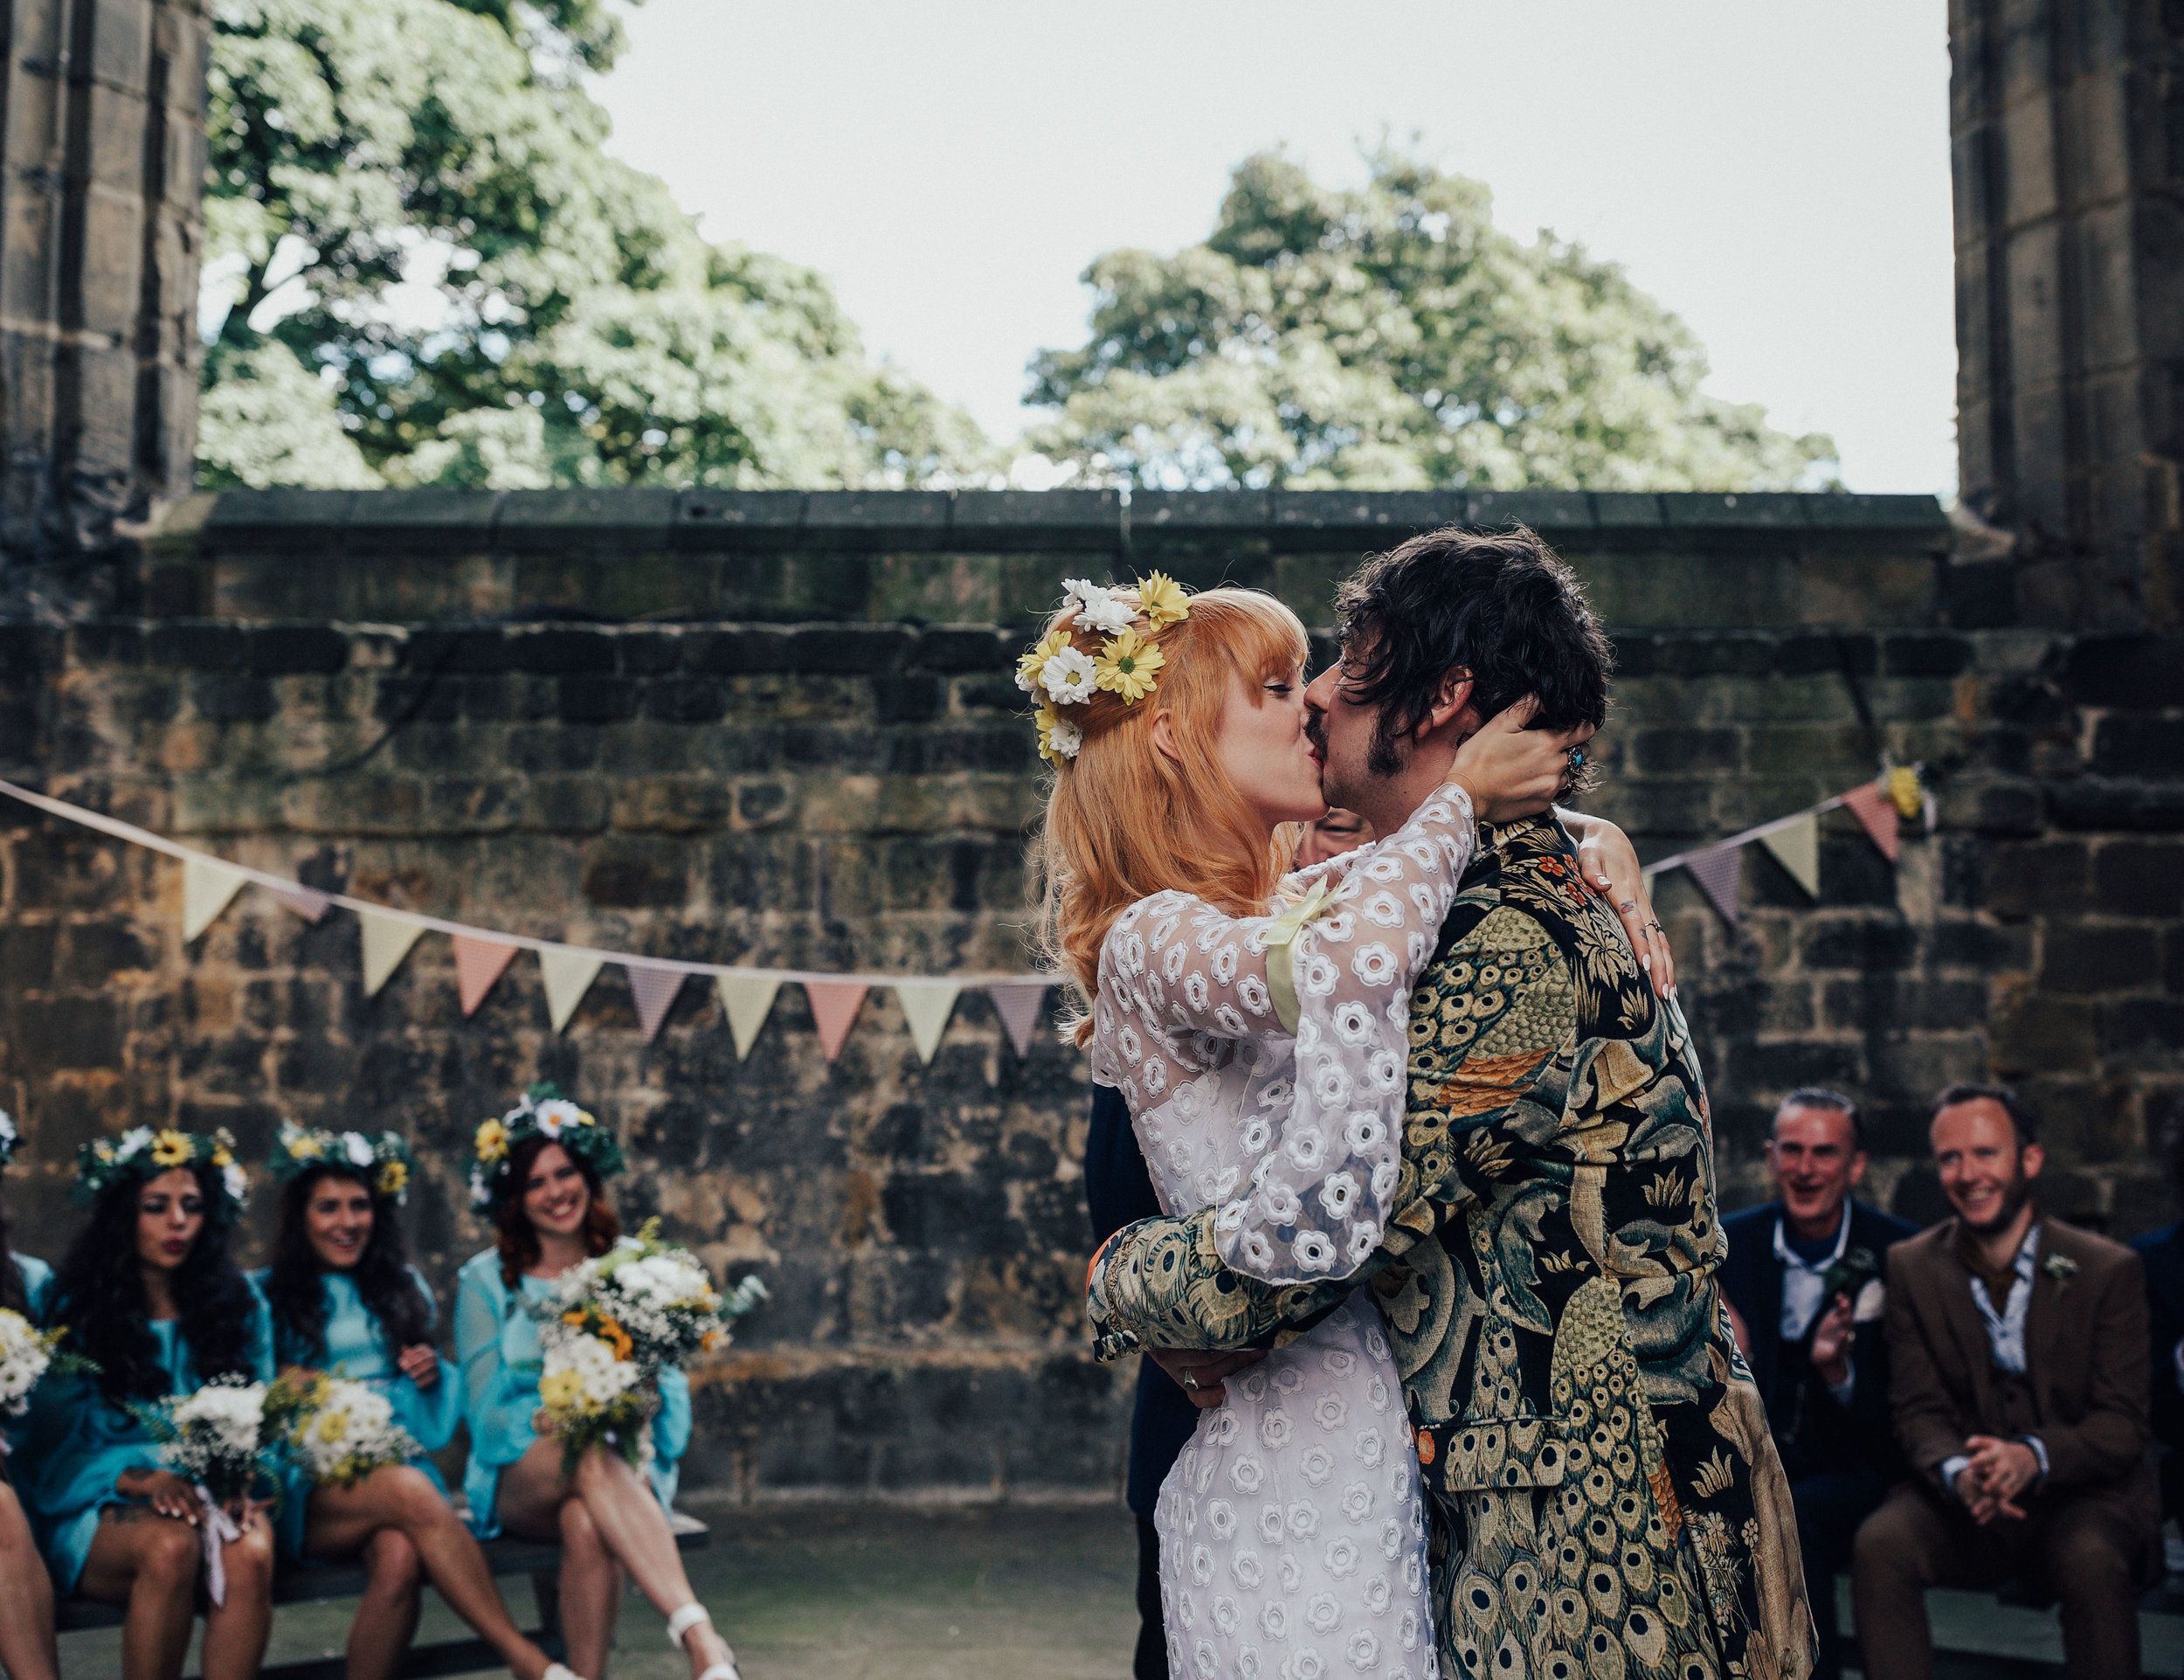 ALTERNATIVE_WEDDING_PHOTOGRAPHY_LEEDS_UK_PJ_PHILLIPS_PHOTOGRAPHY_75.jpg